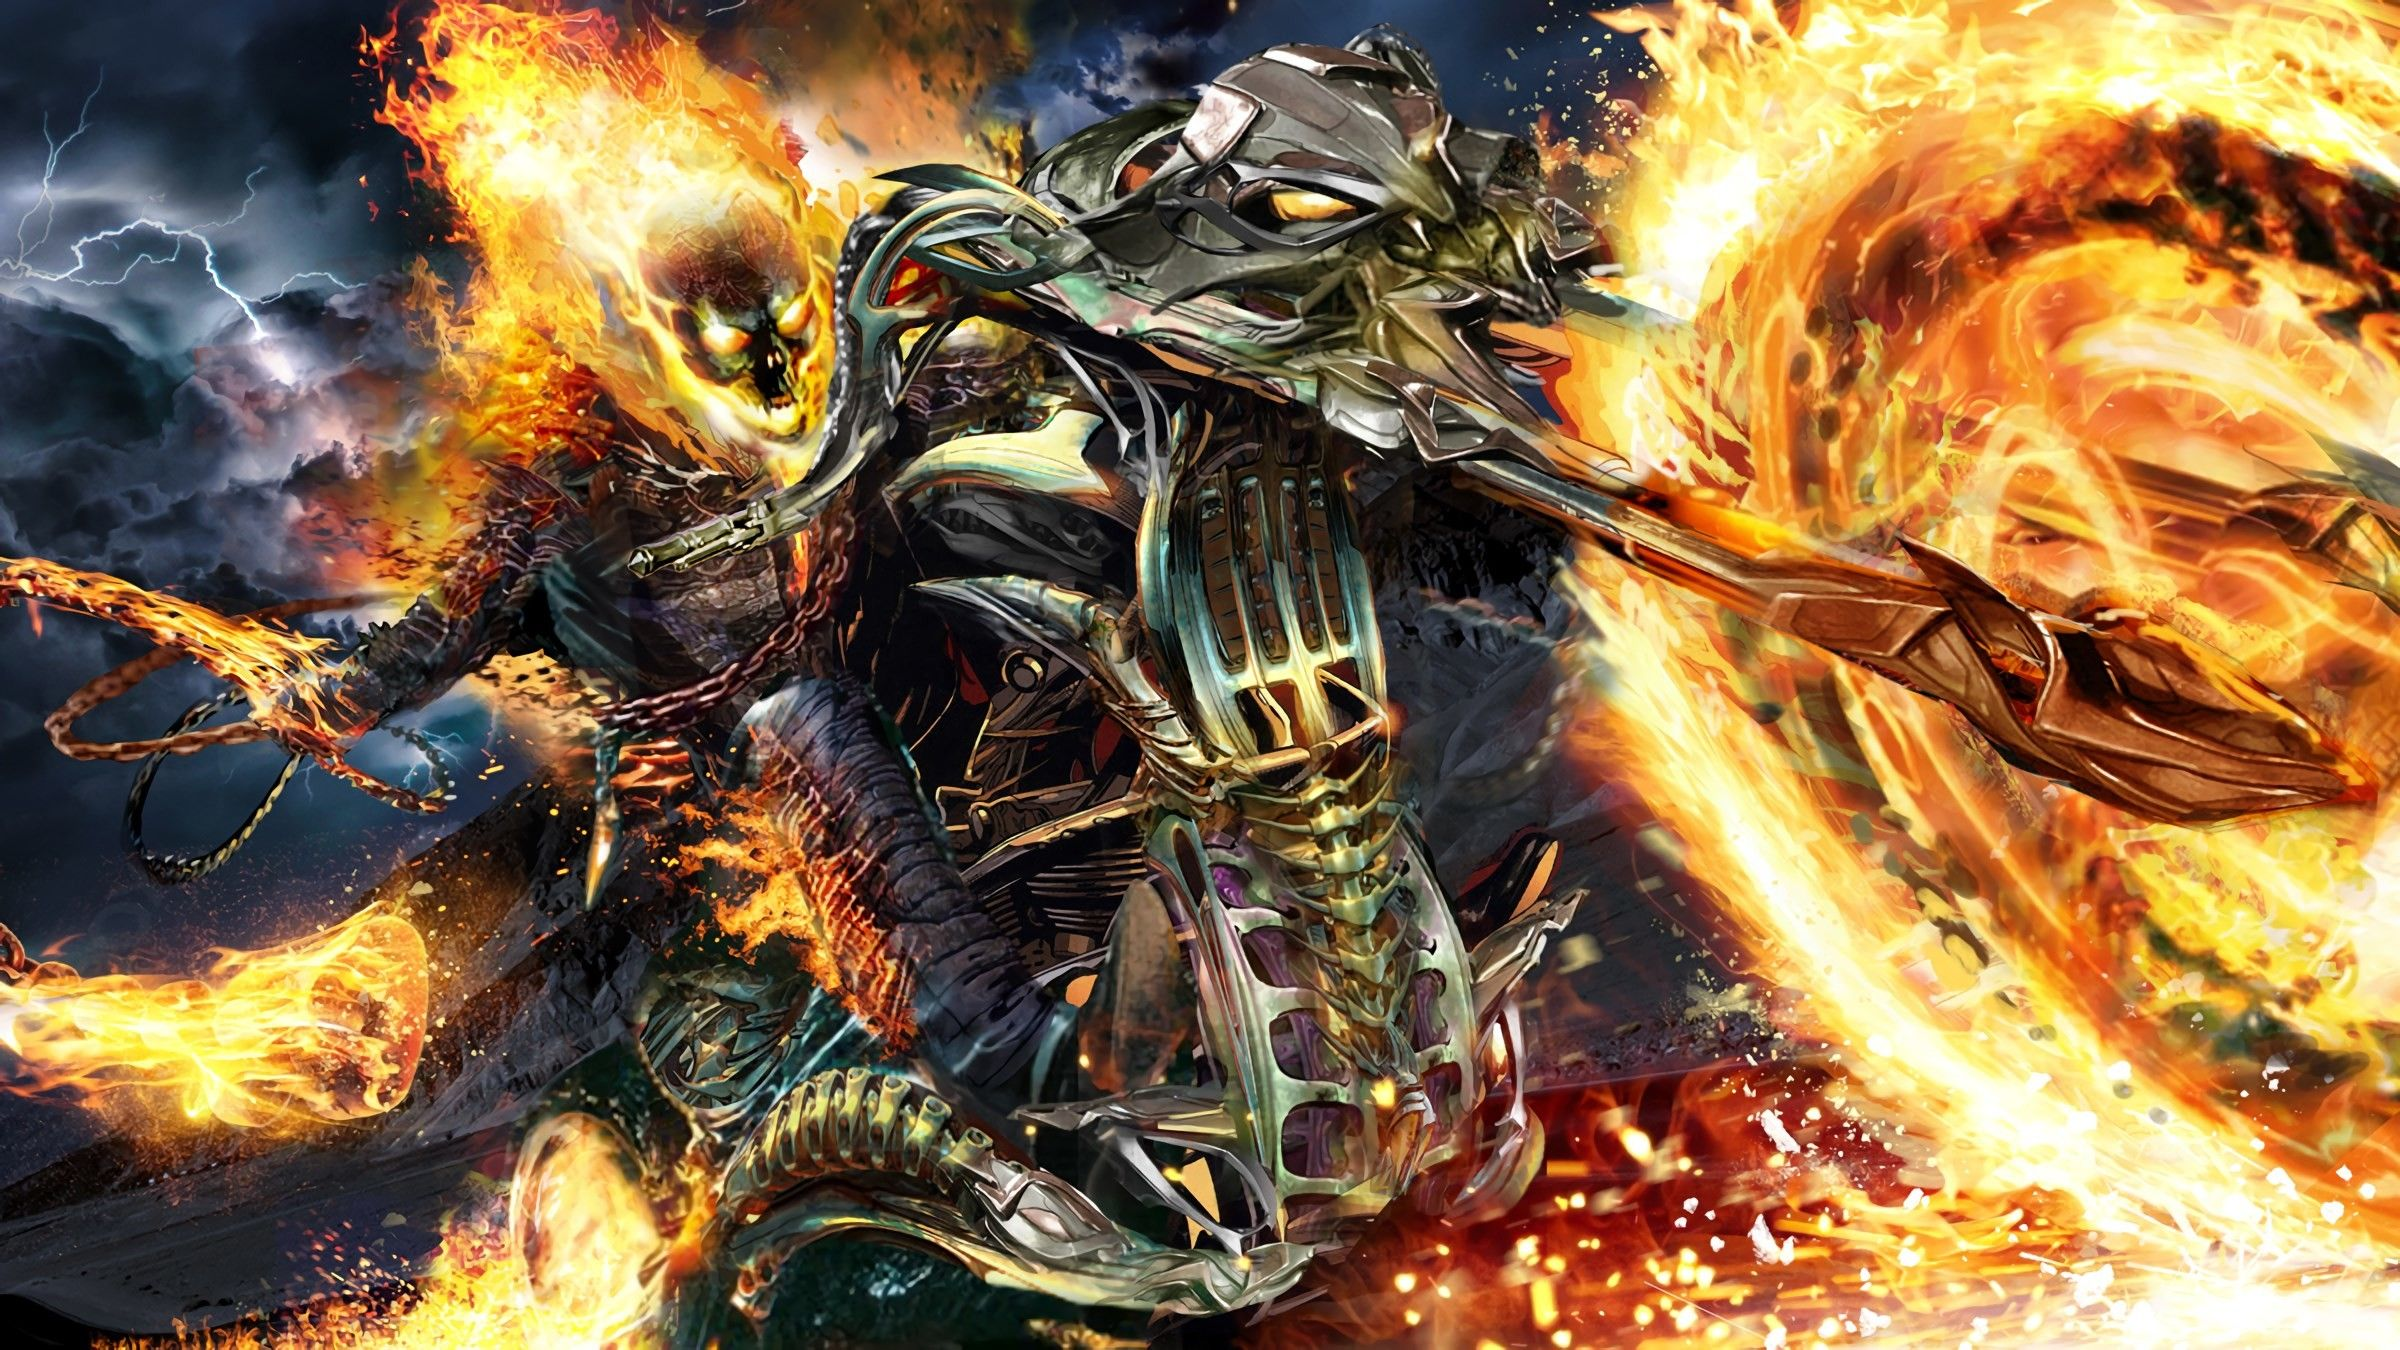 Full HD Ghost Rider Computer Wallpapers - Wallpaper Cave